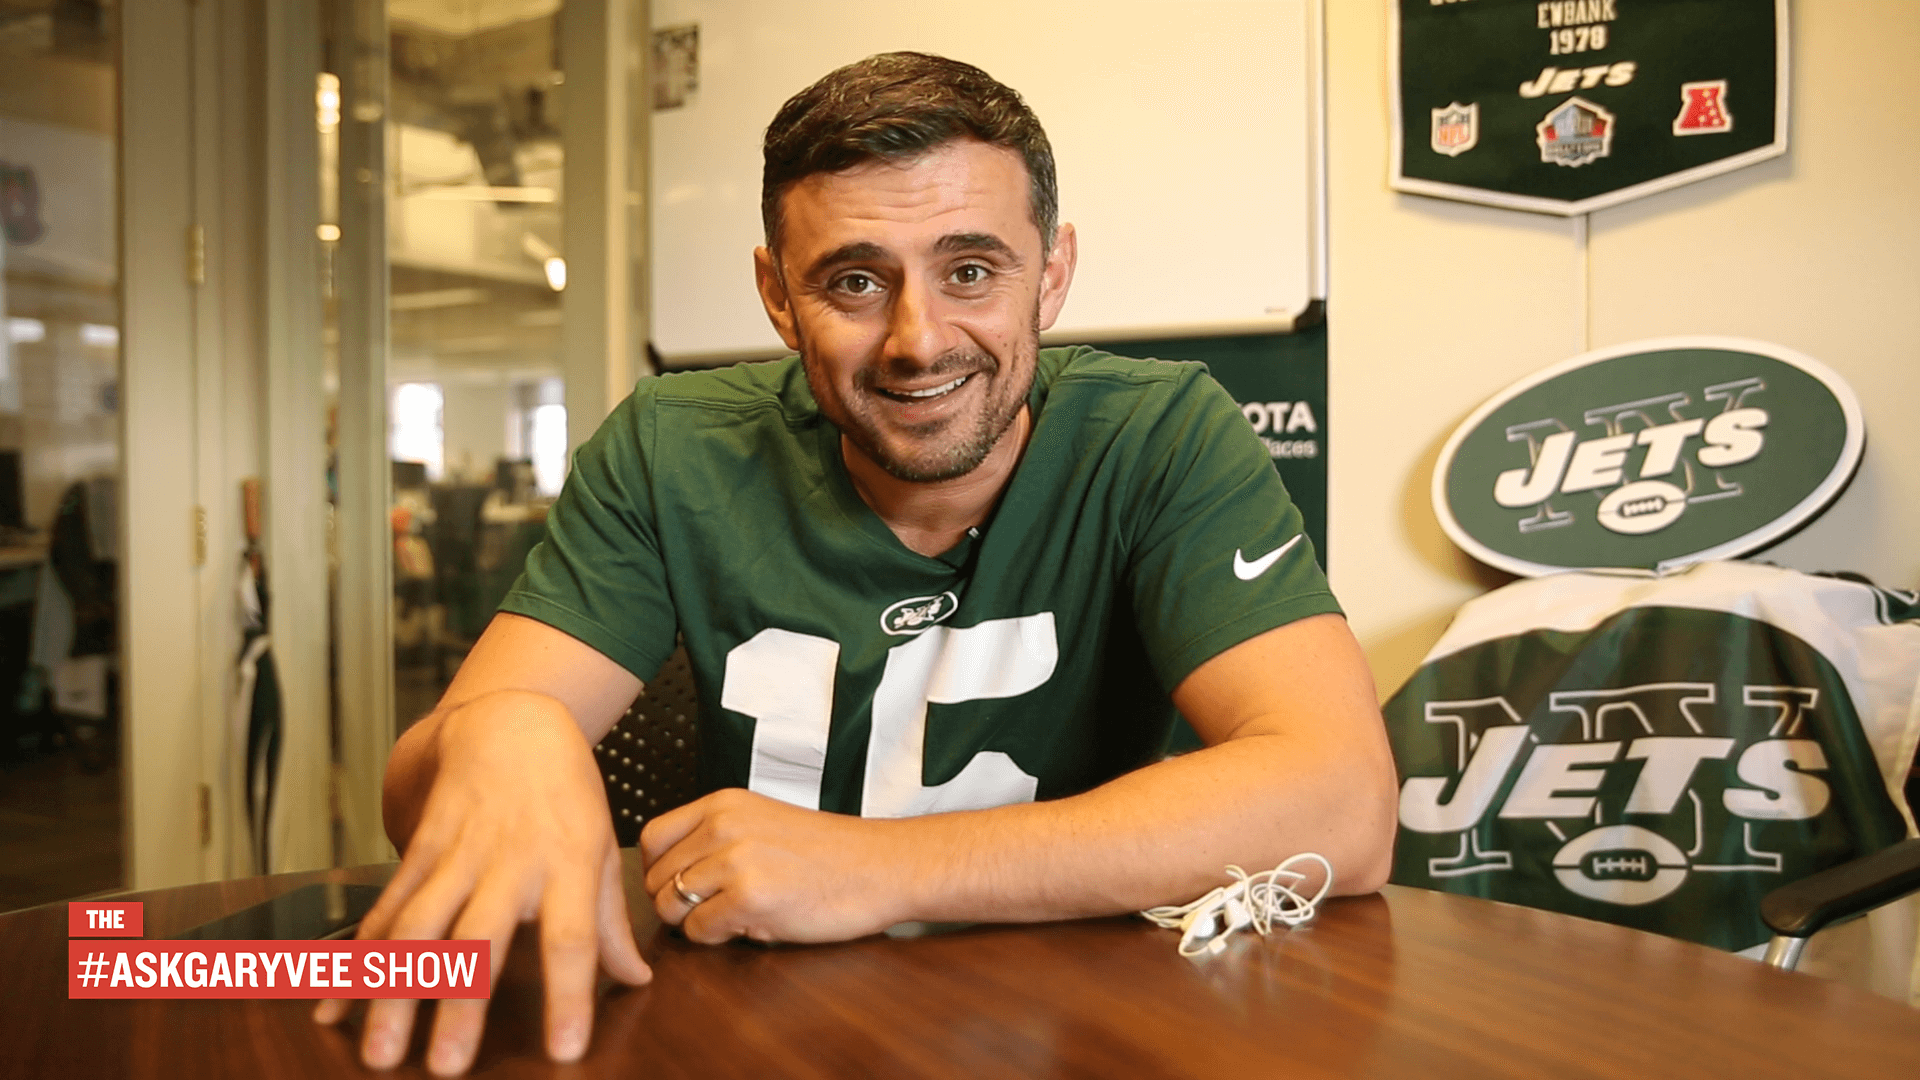 A special episode of the #AskGaryVee Show featuring the NY Jets